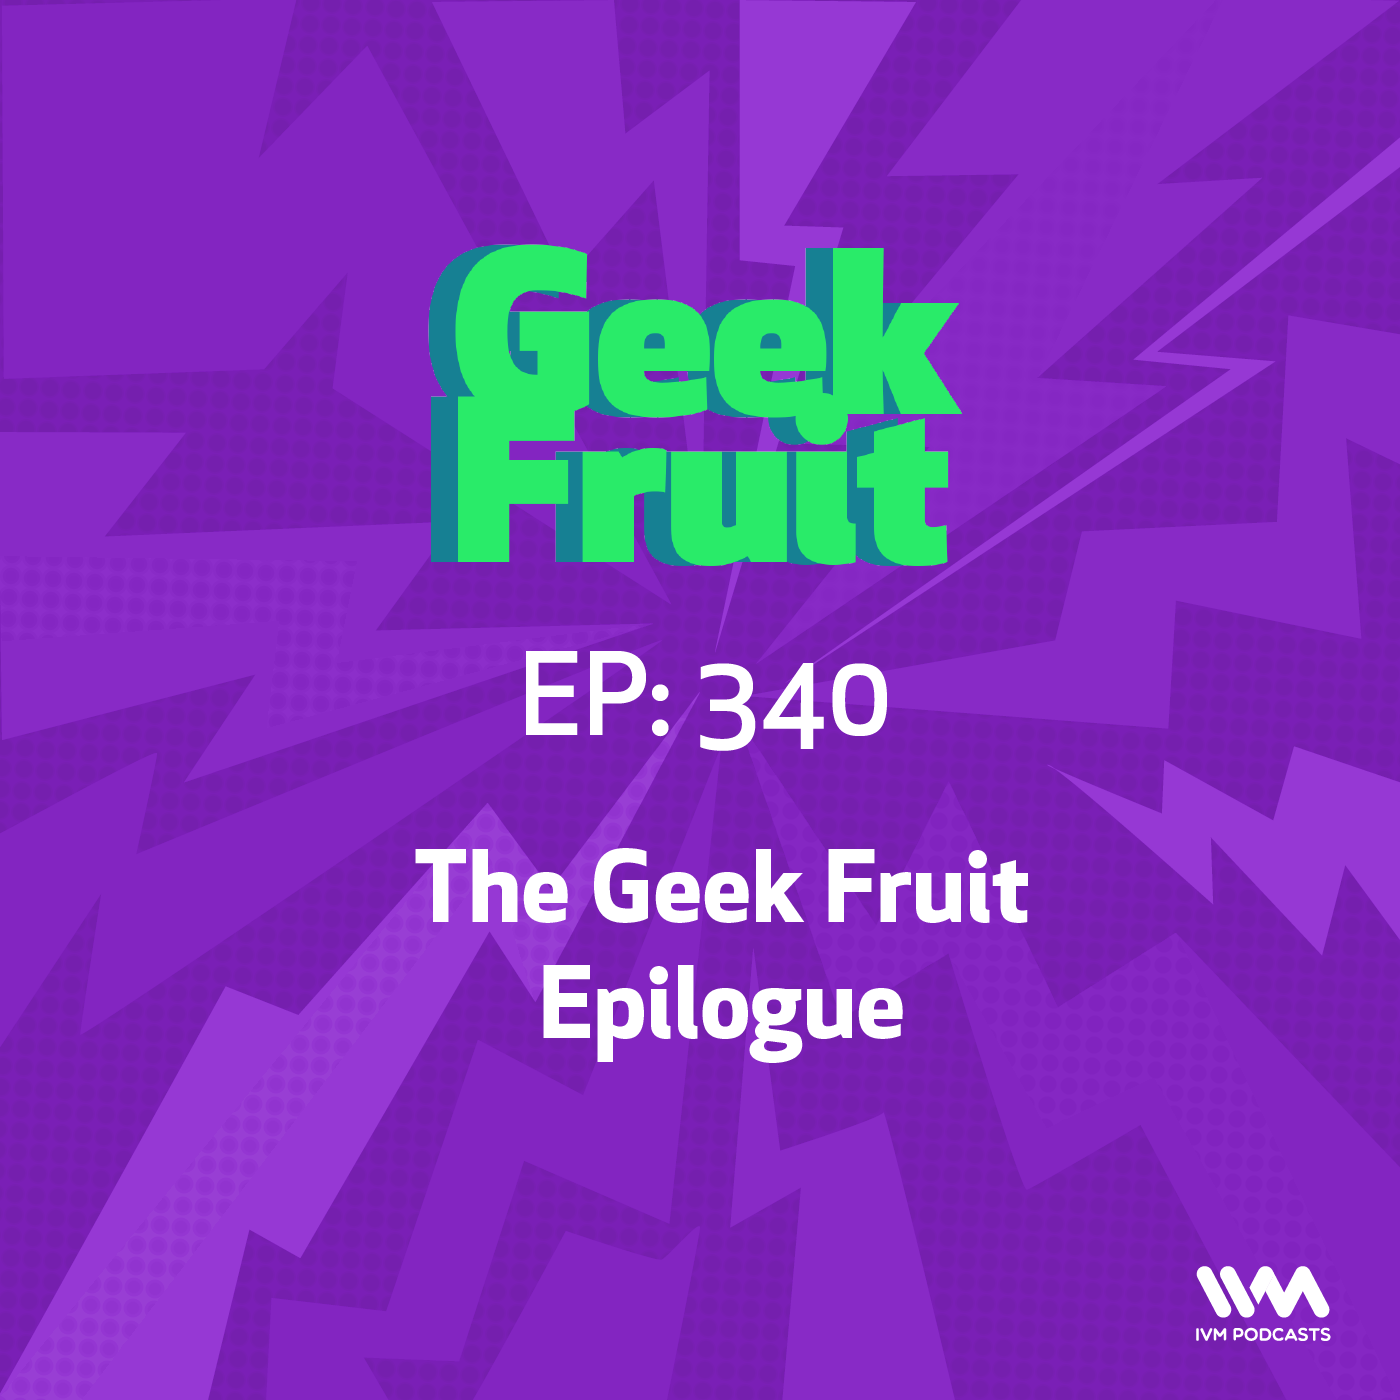 Ep. 340: The Geek Fruit Epilogue